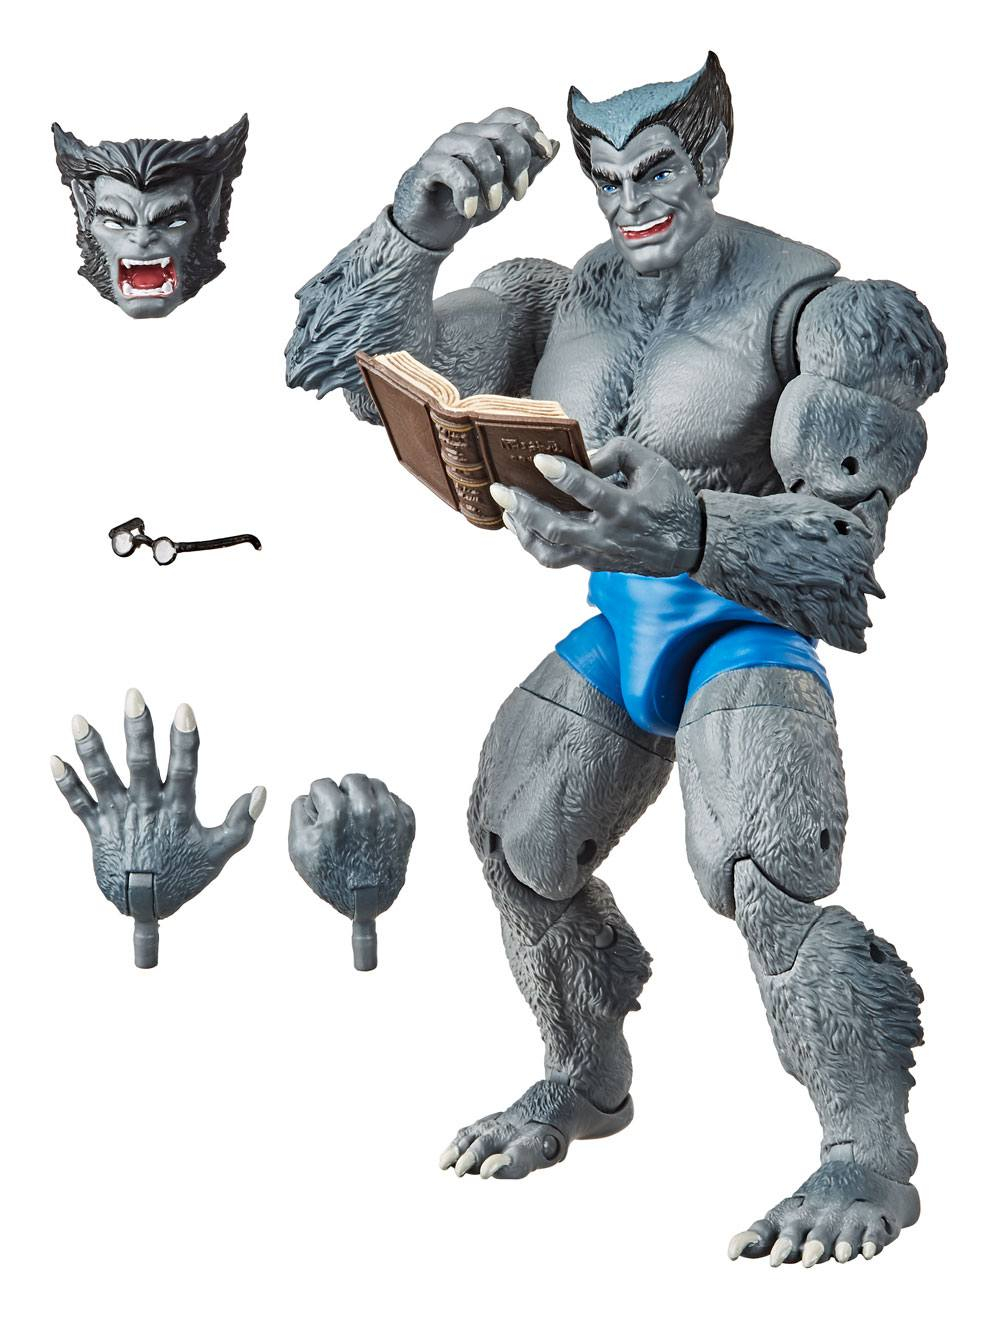 *PREORDER* Marvel Legends Retro Collection - The Uncanny X-Men: BEAST by Hasbro